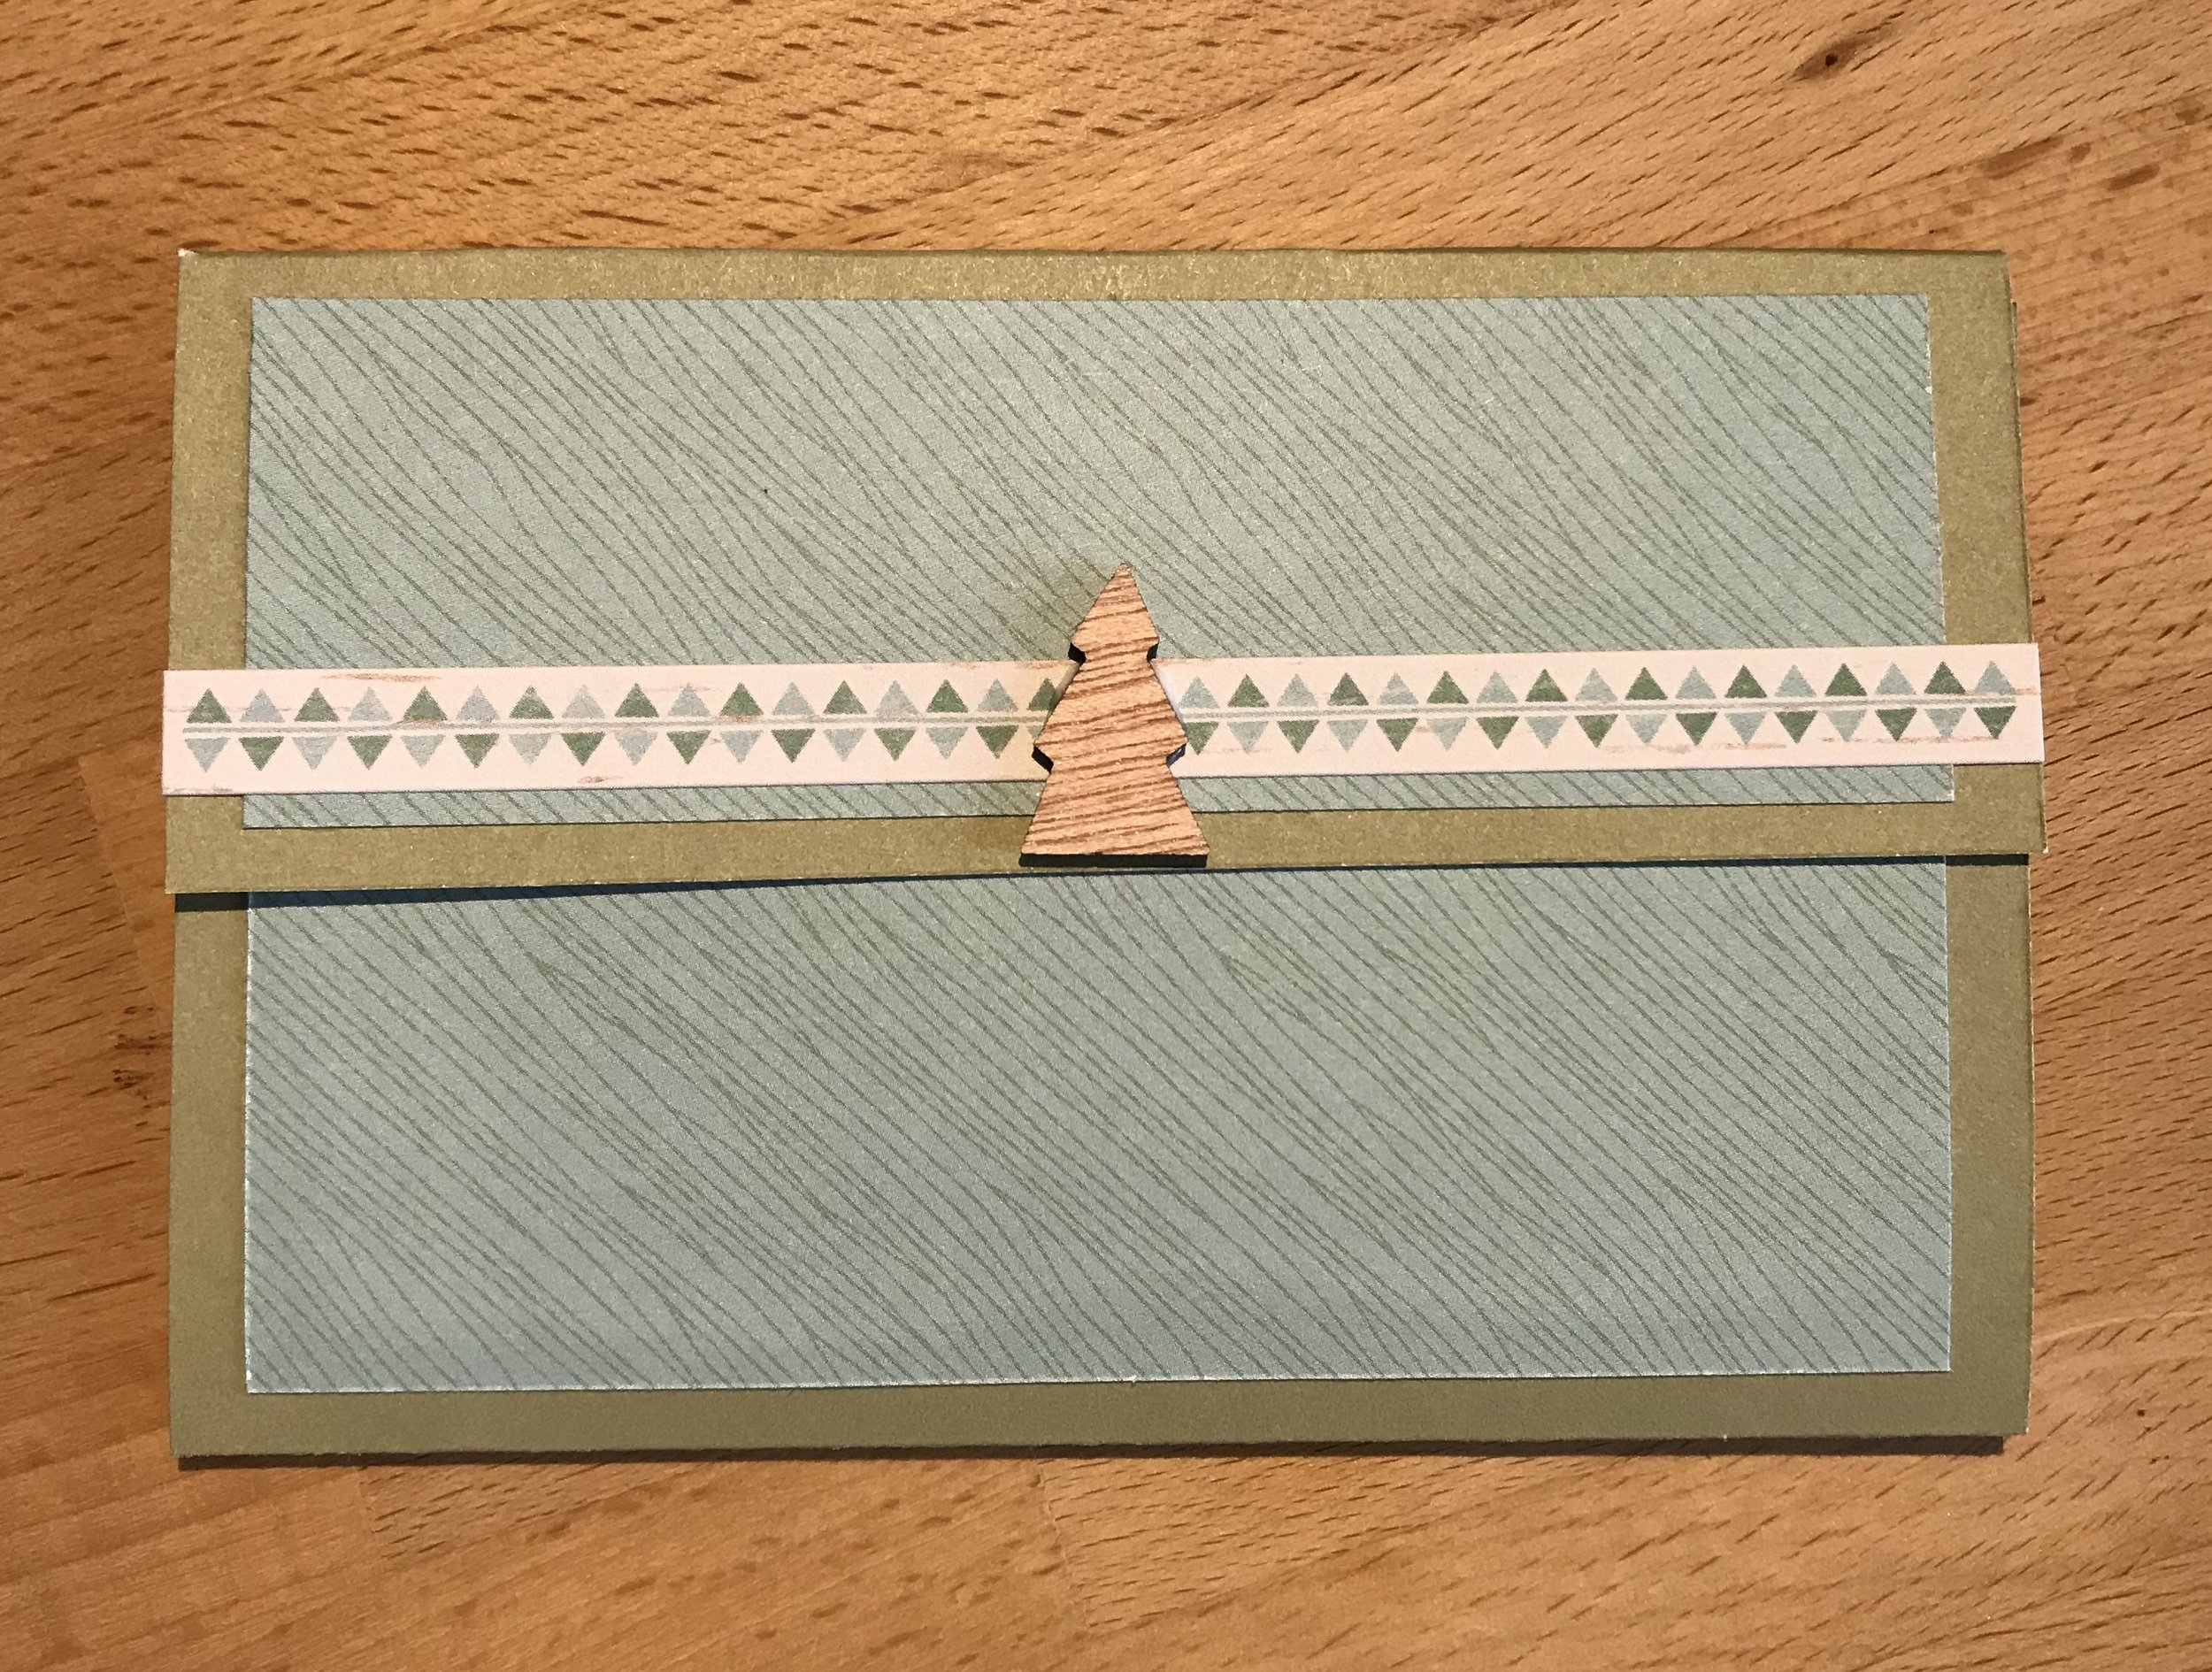 Fresh Air Gift Card Holder (CC tutorial) cover.jpg